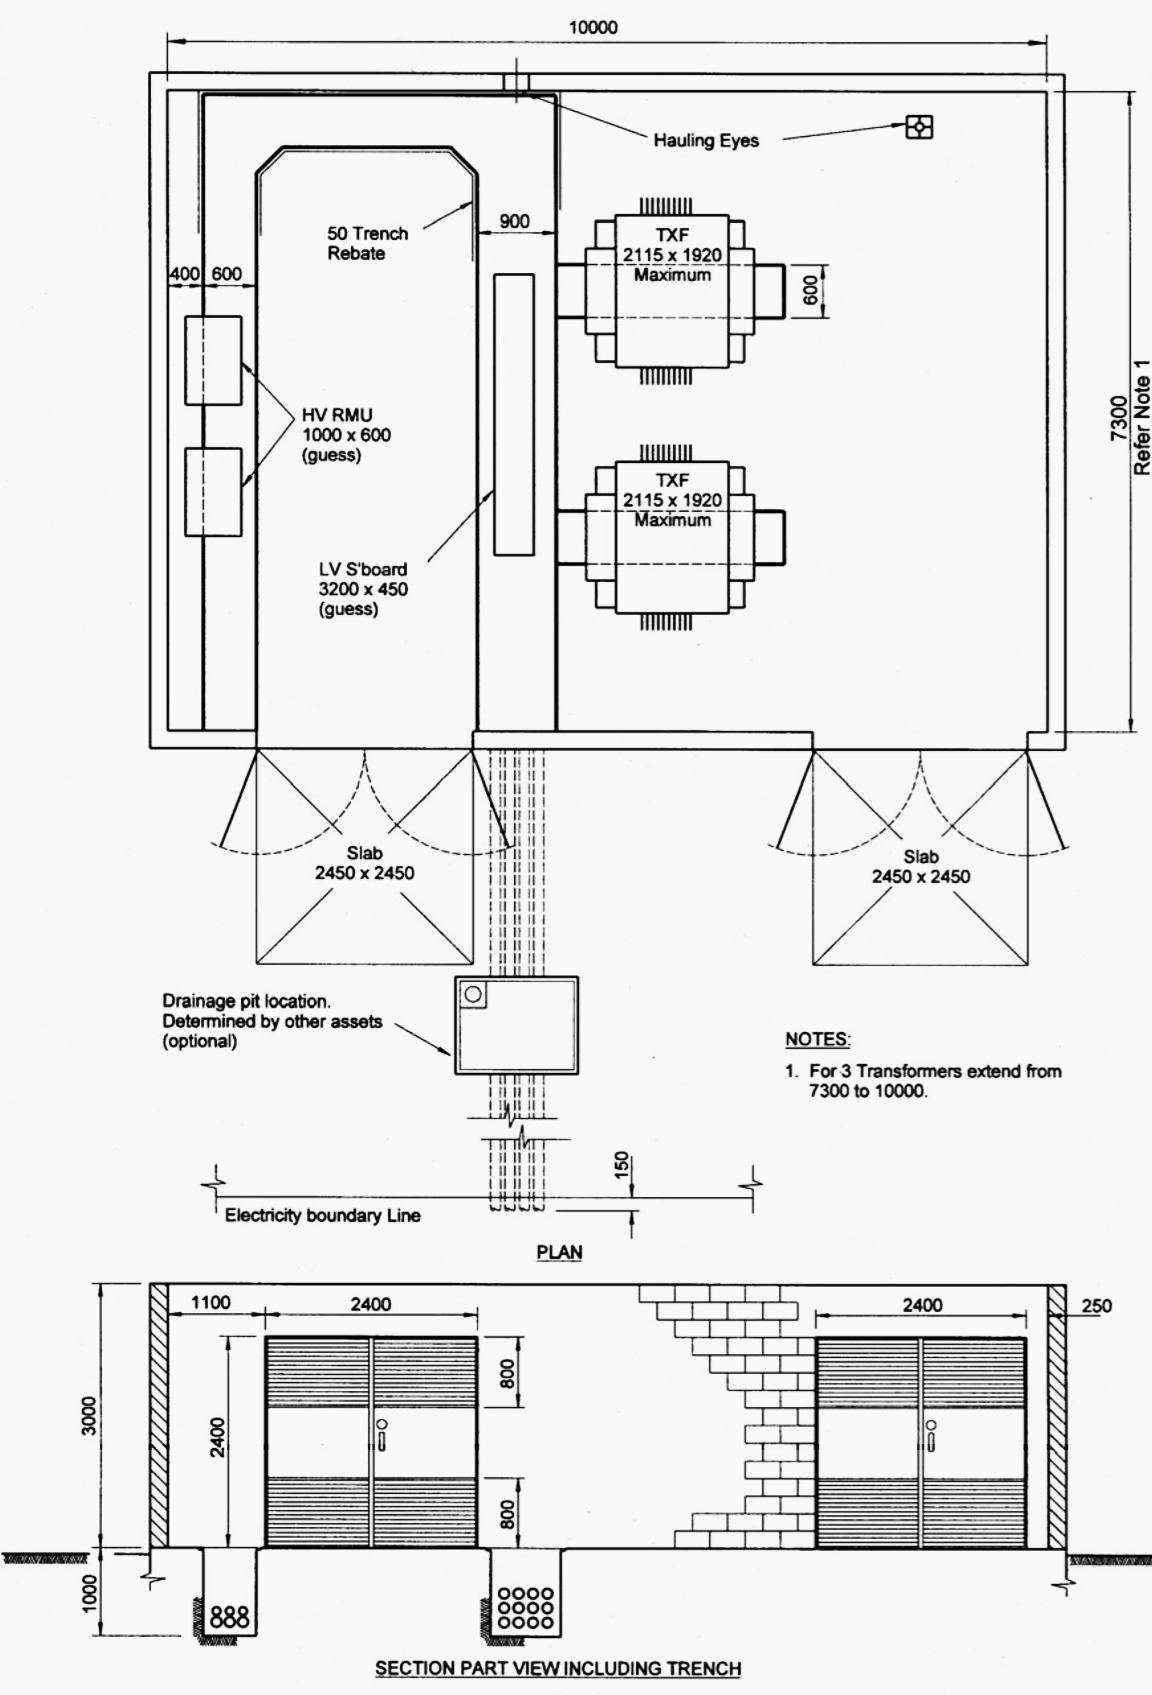 Indoor Distribution Substation Layout With 2 Transformers Emf Containment And 1 External Wall